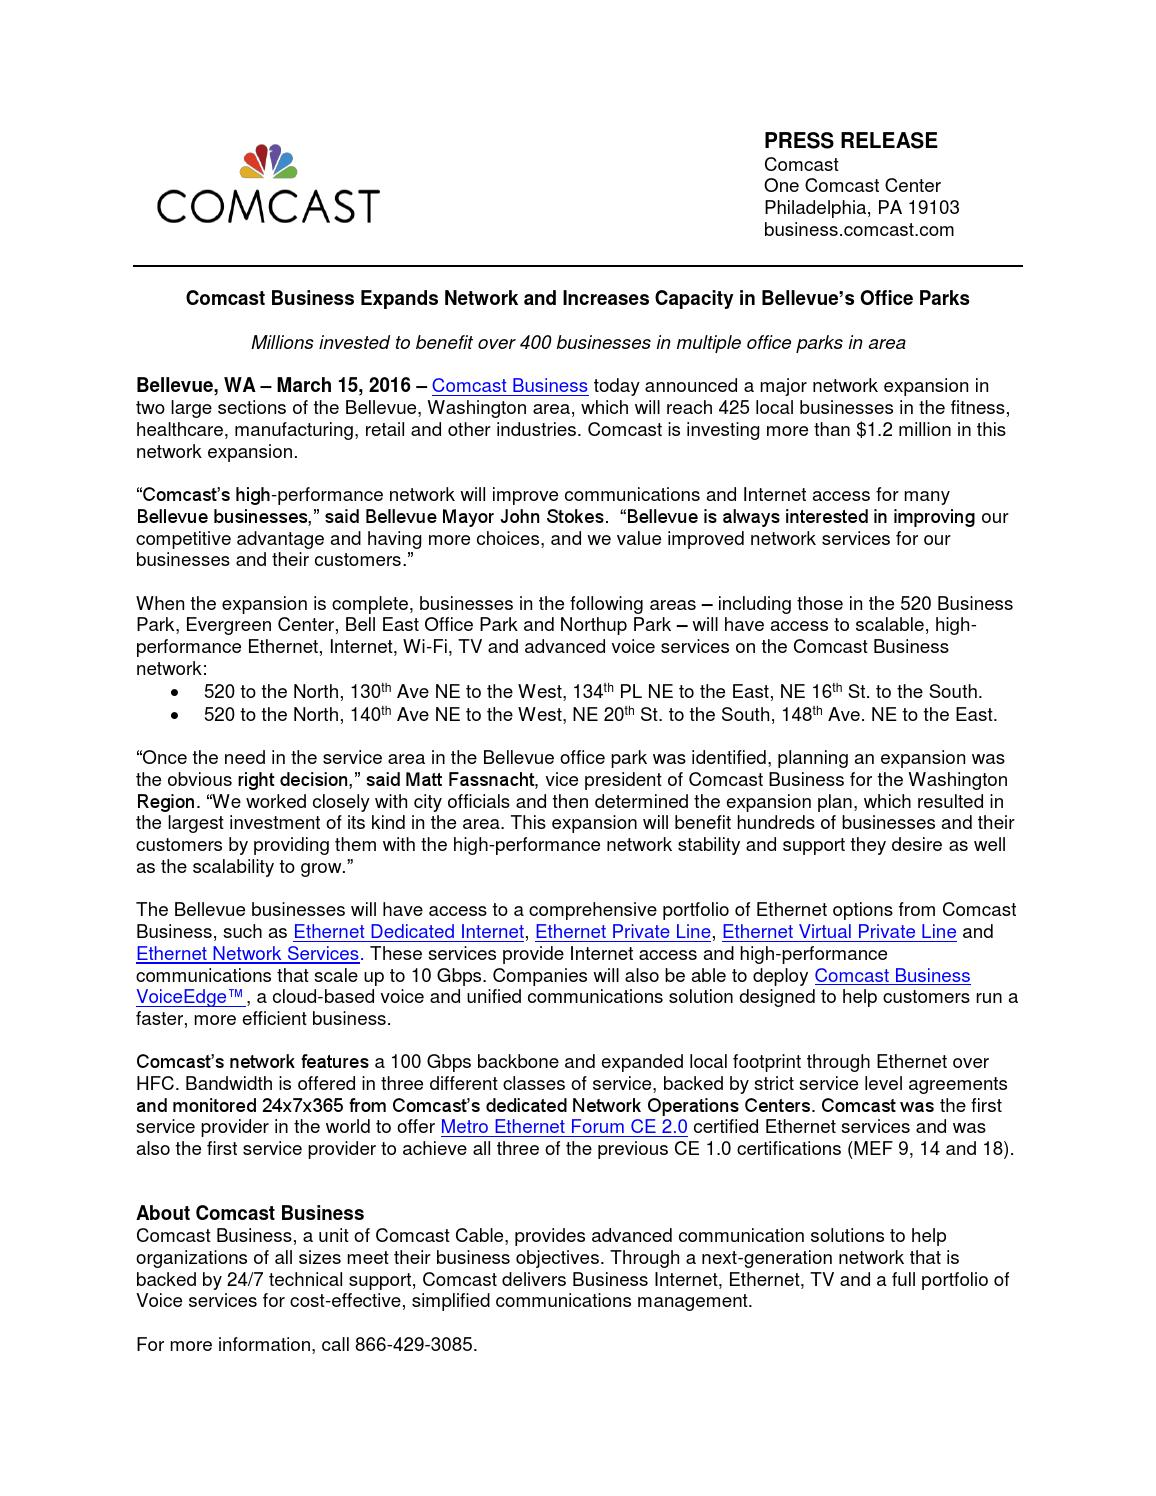 Comcast Business Expands Network In Bellevue by Brian Wade